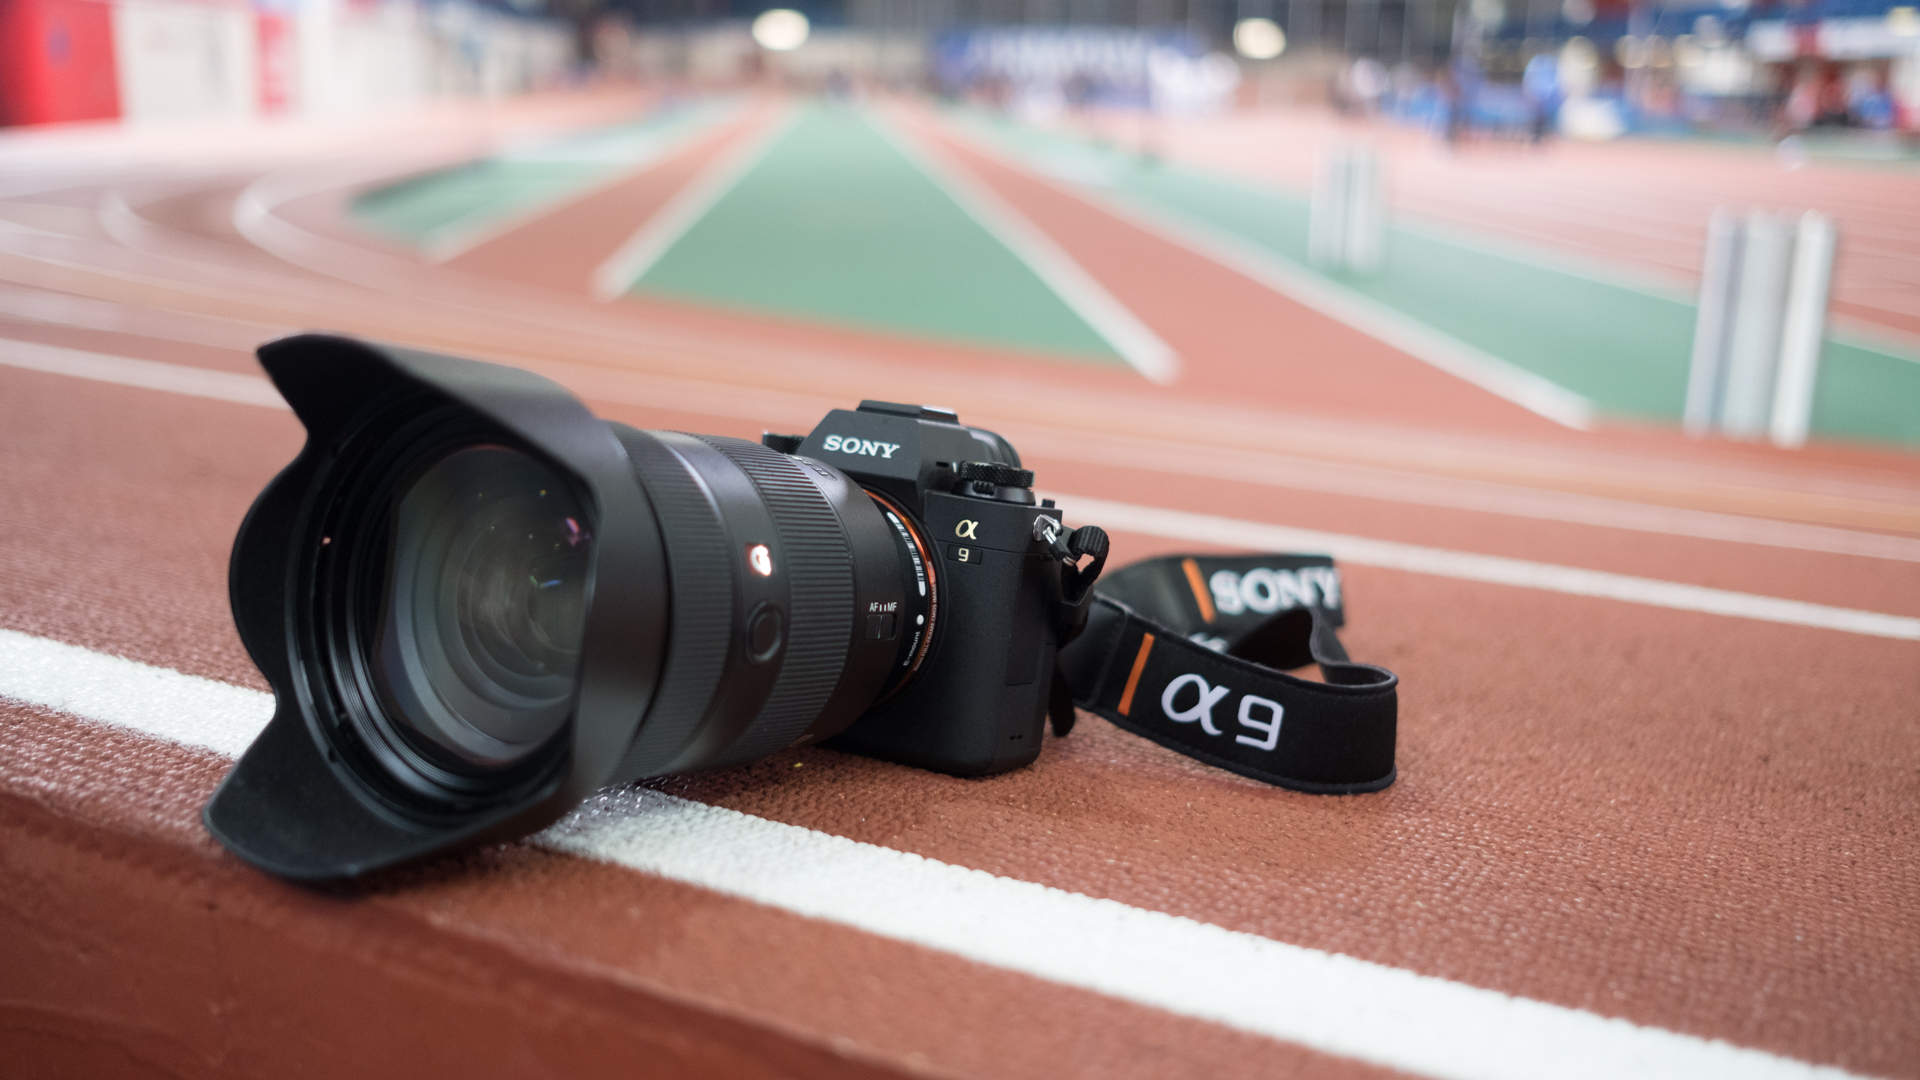 Sony A9 finally gets its Real Time Tracking boost through v5 0